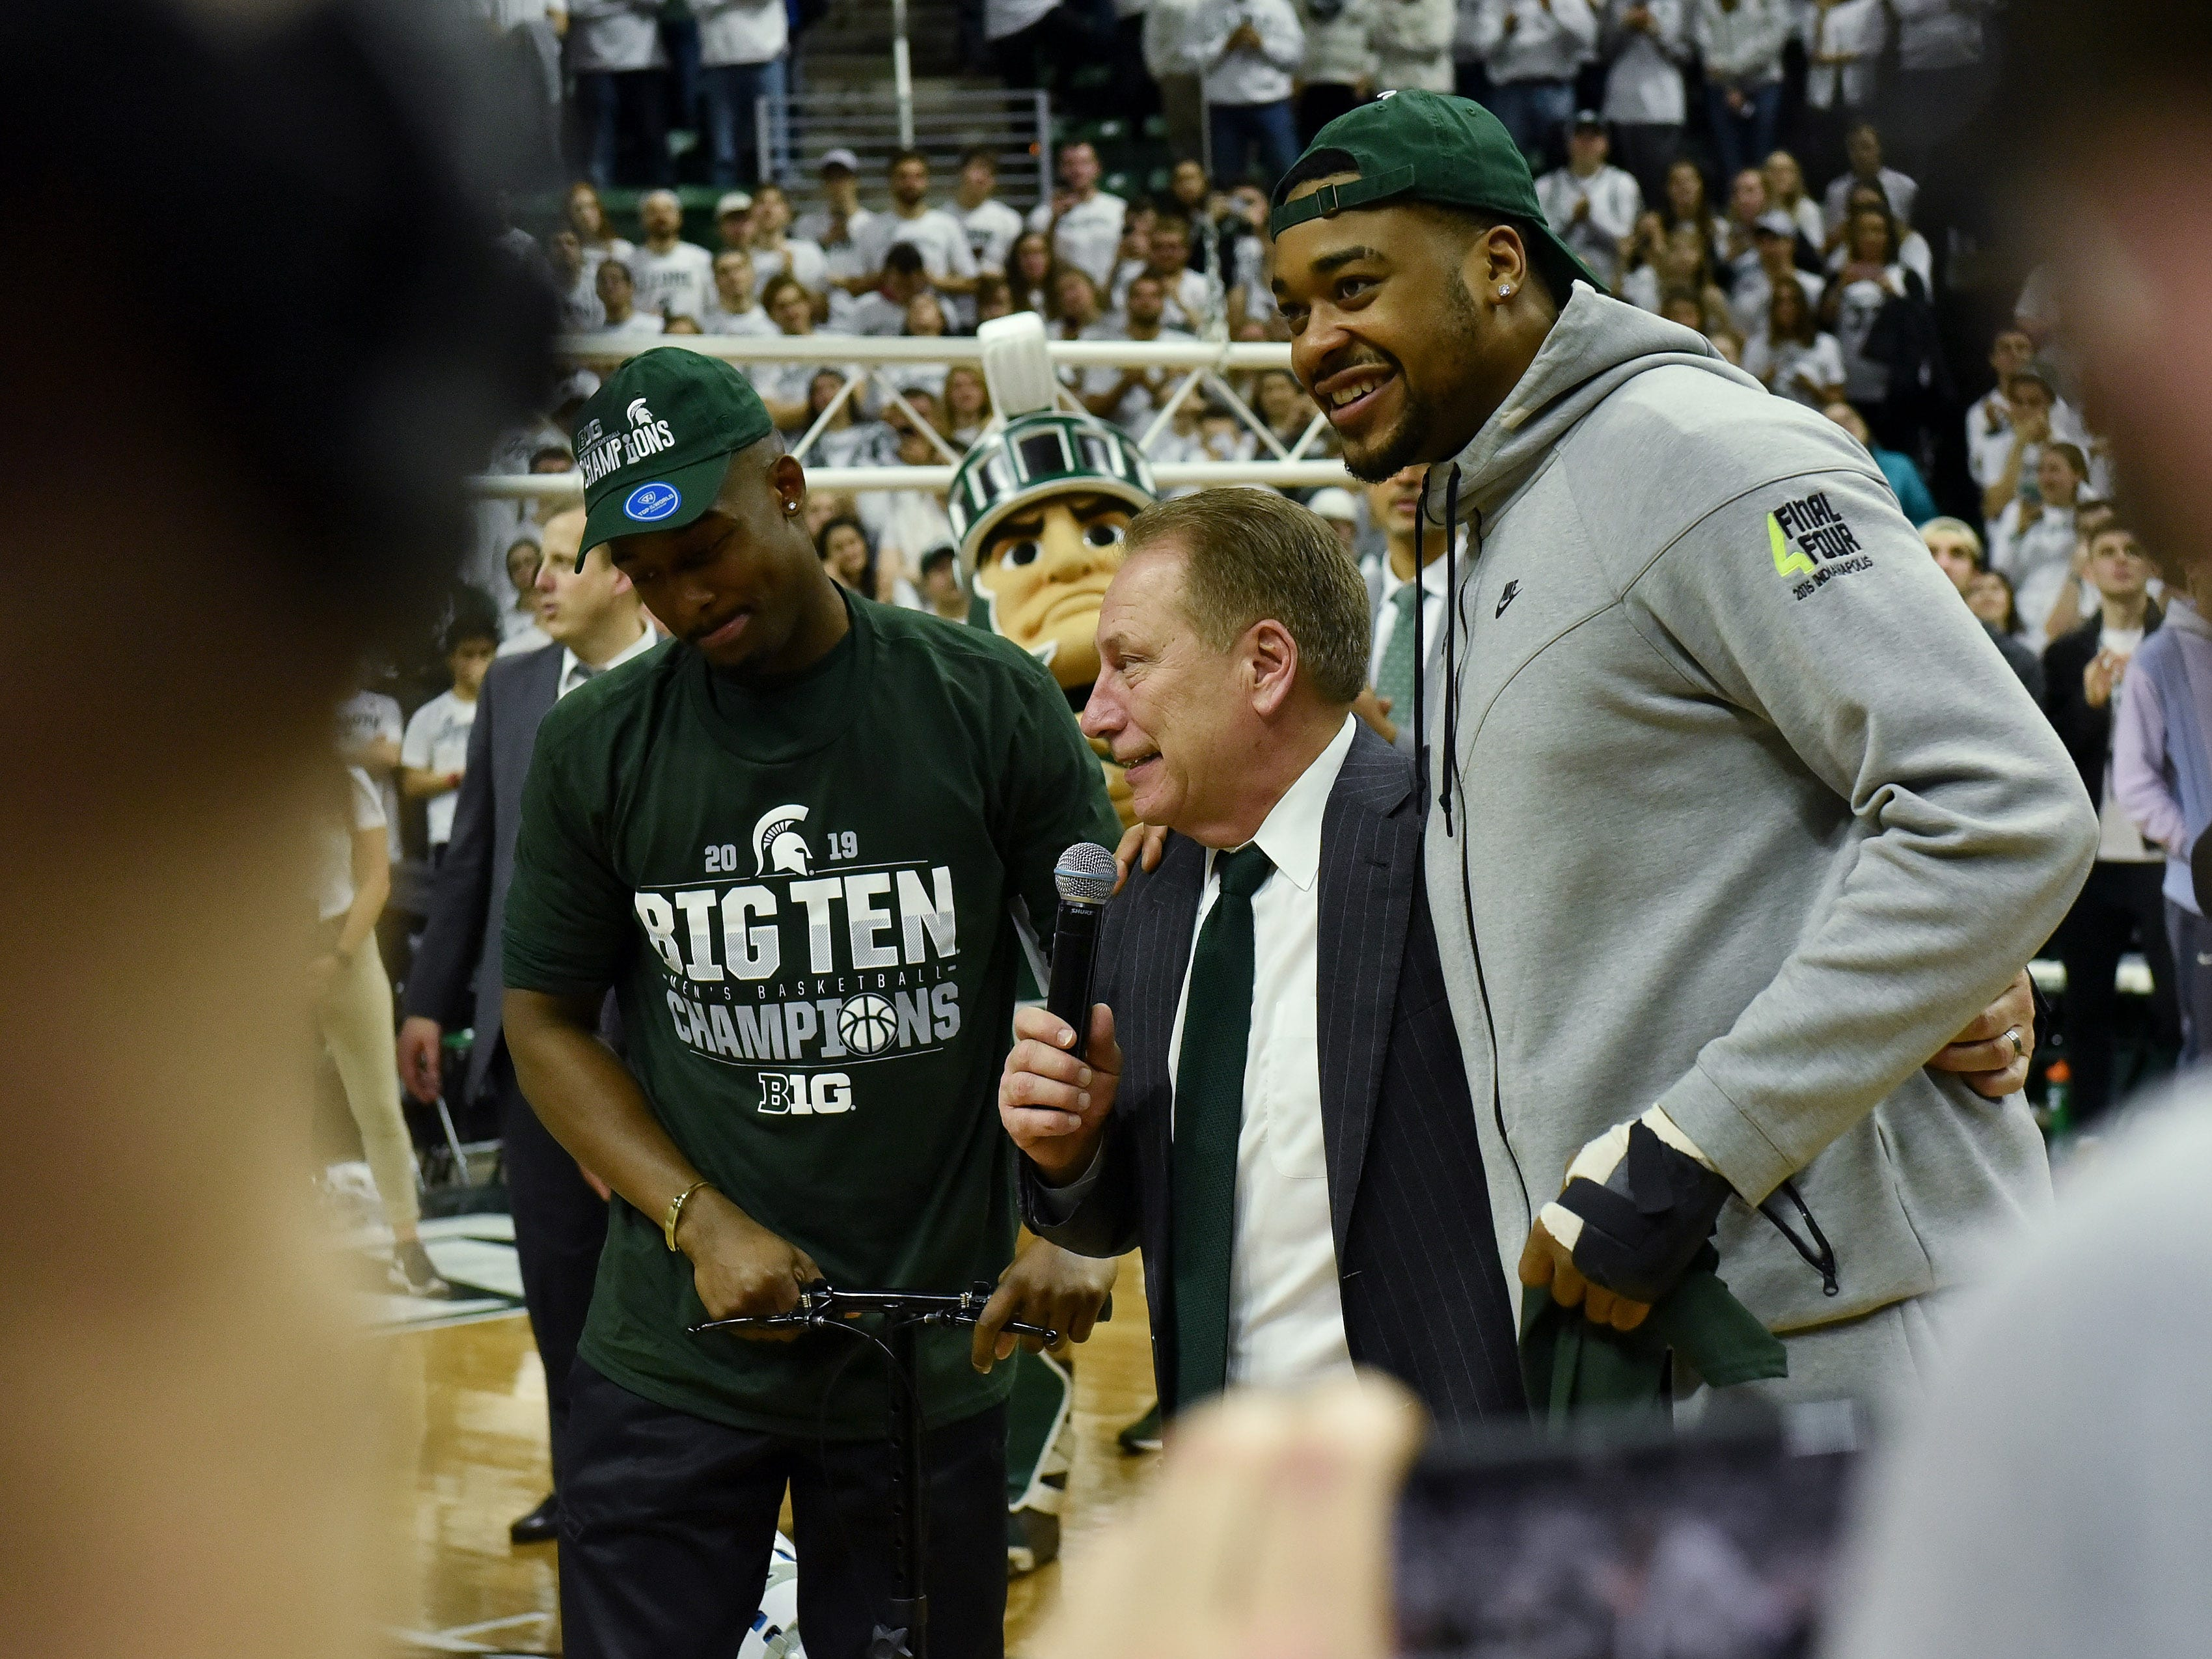 Michigan State head coach Tom Izzo with injured players Nick Ward, right, and Joshua Langford, left, after the game.